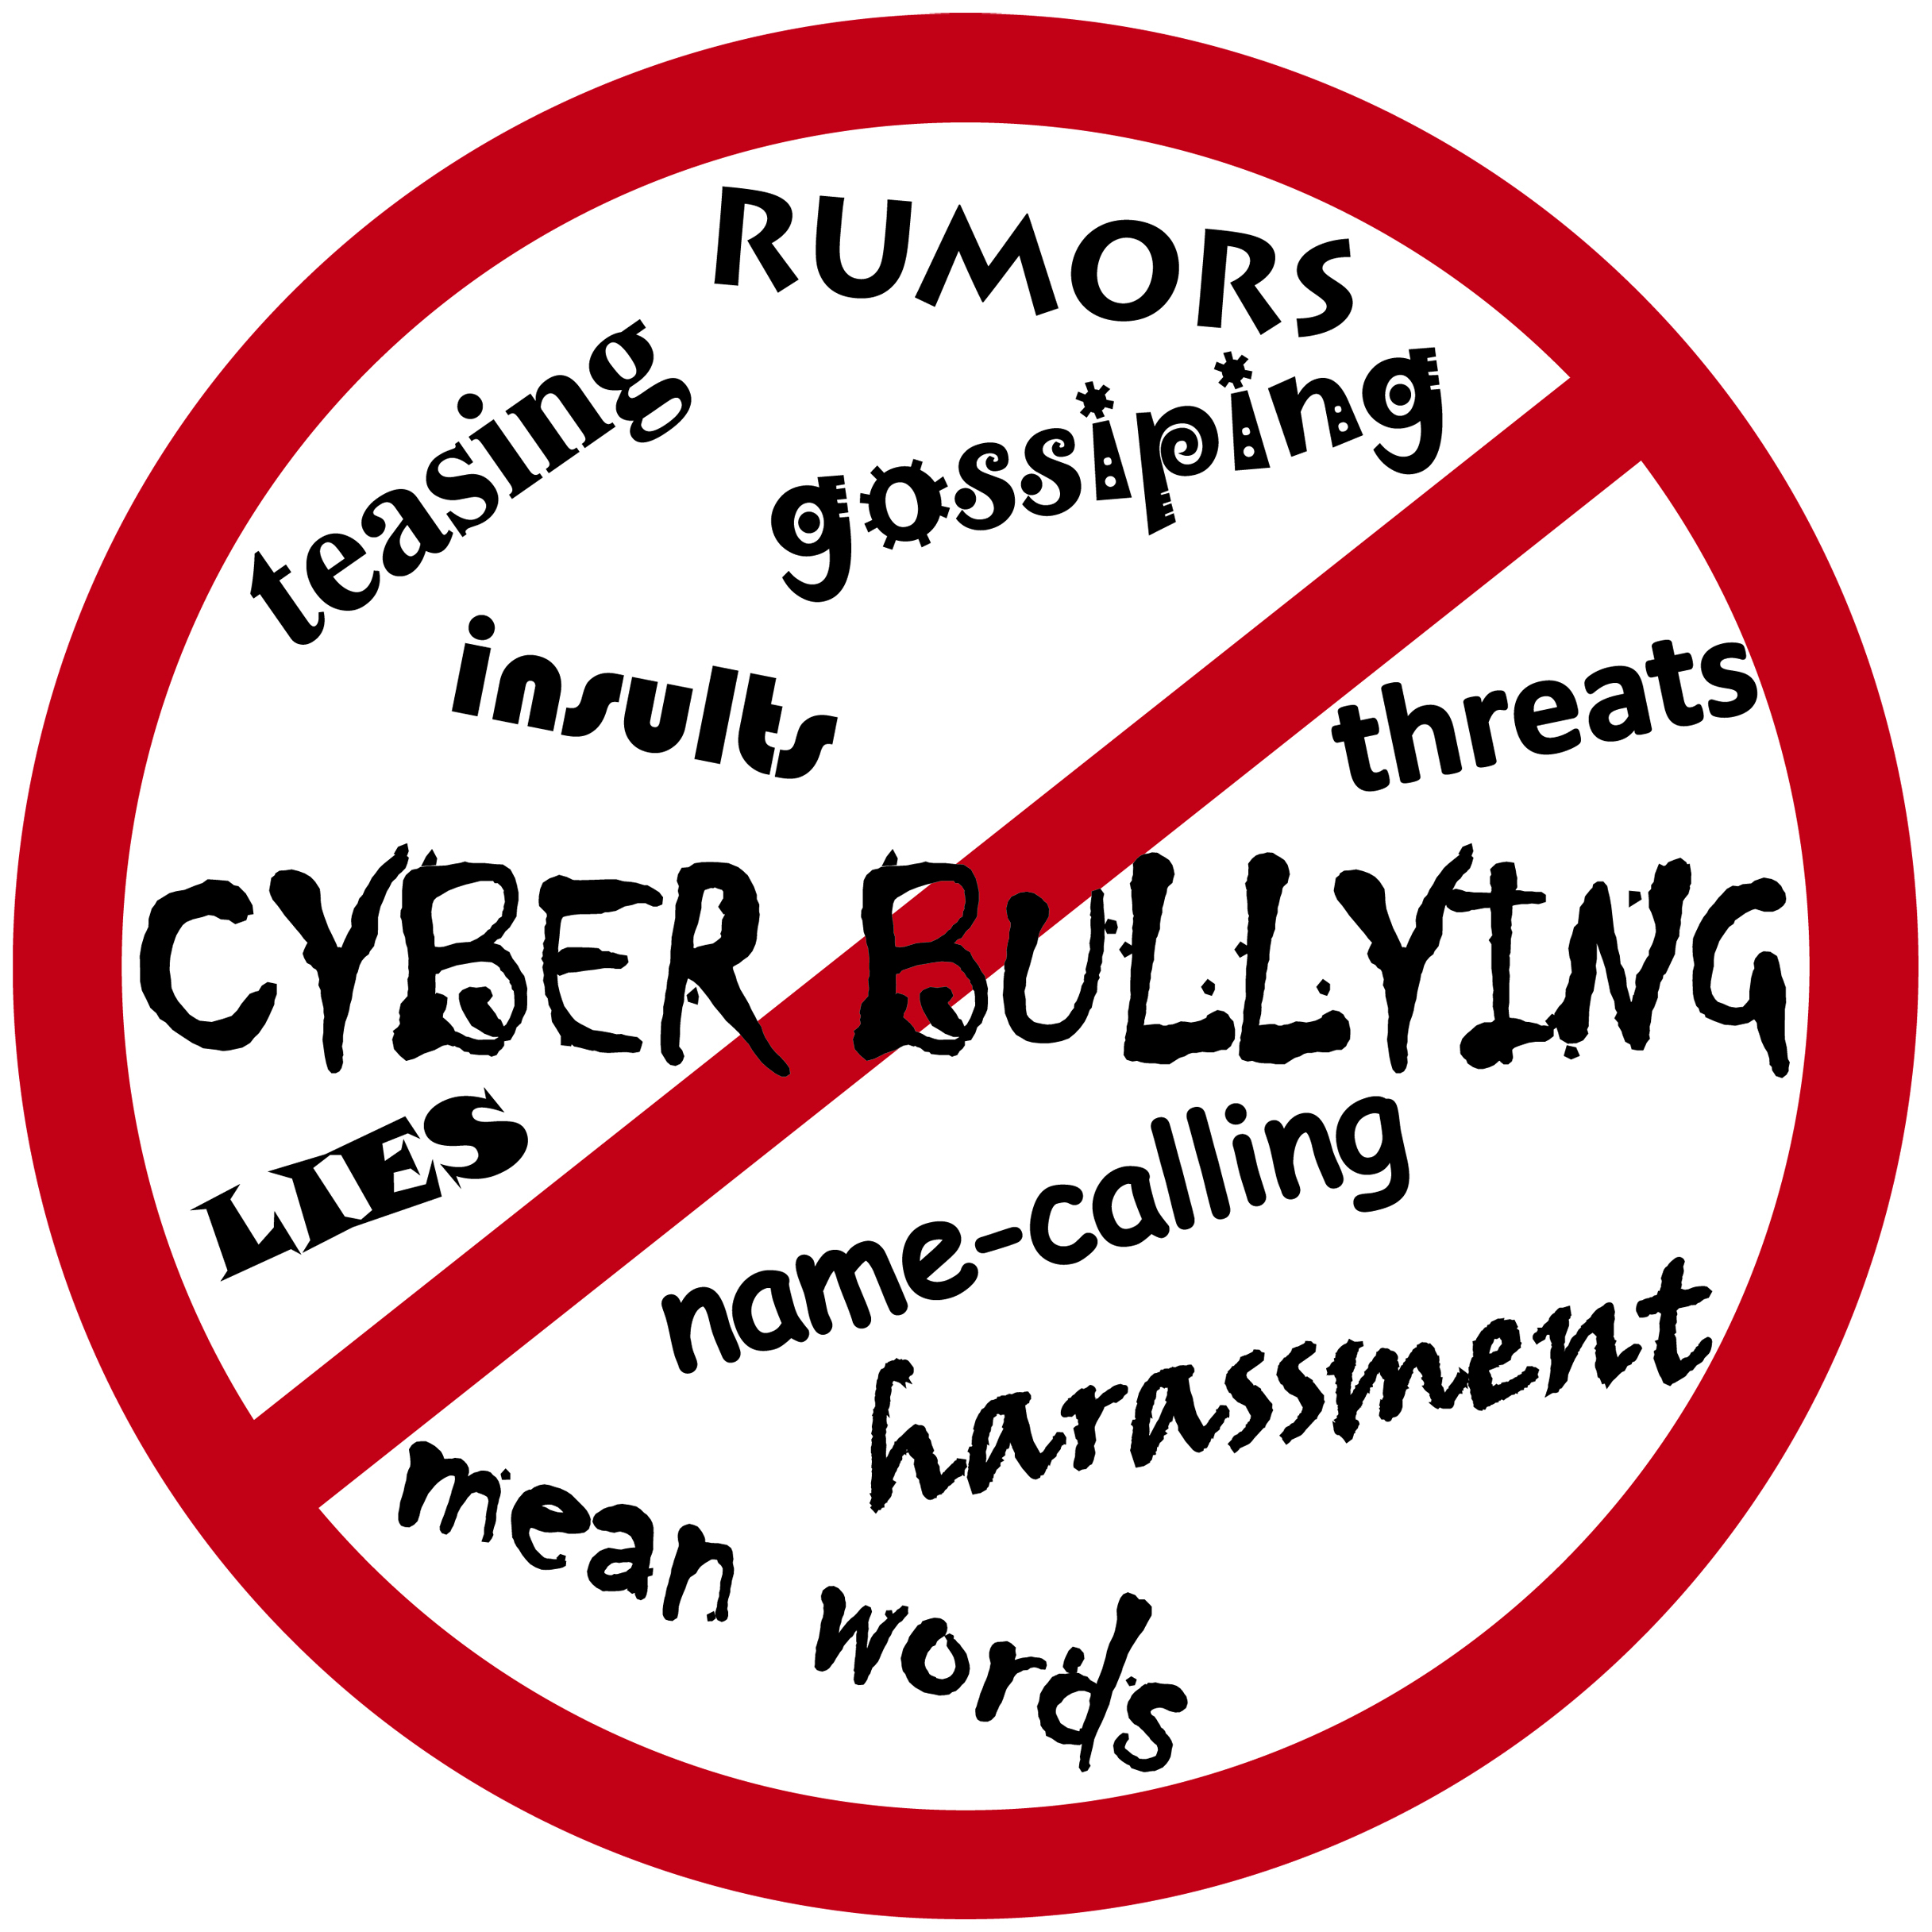 Anti Cybercrime Logo Conoces el Bullying, e...